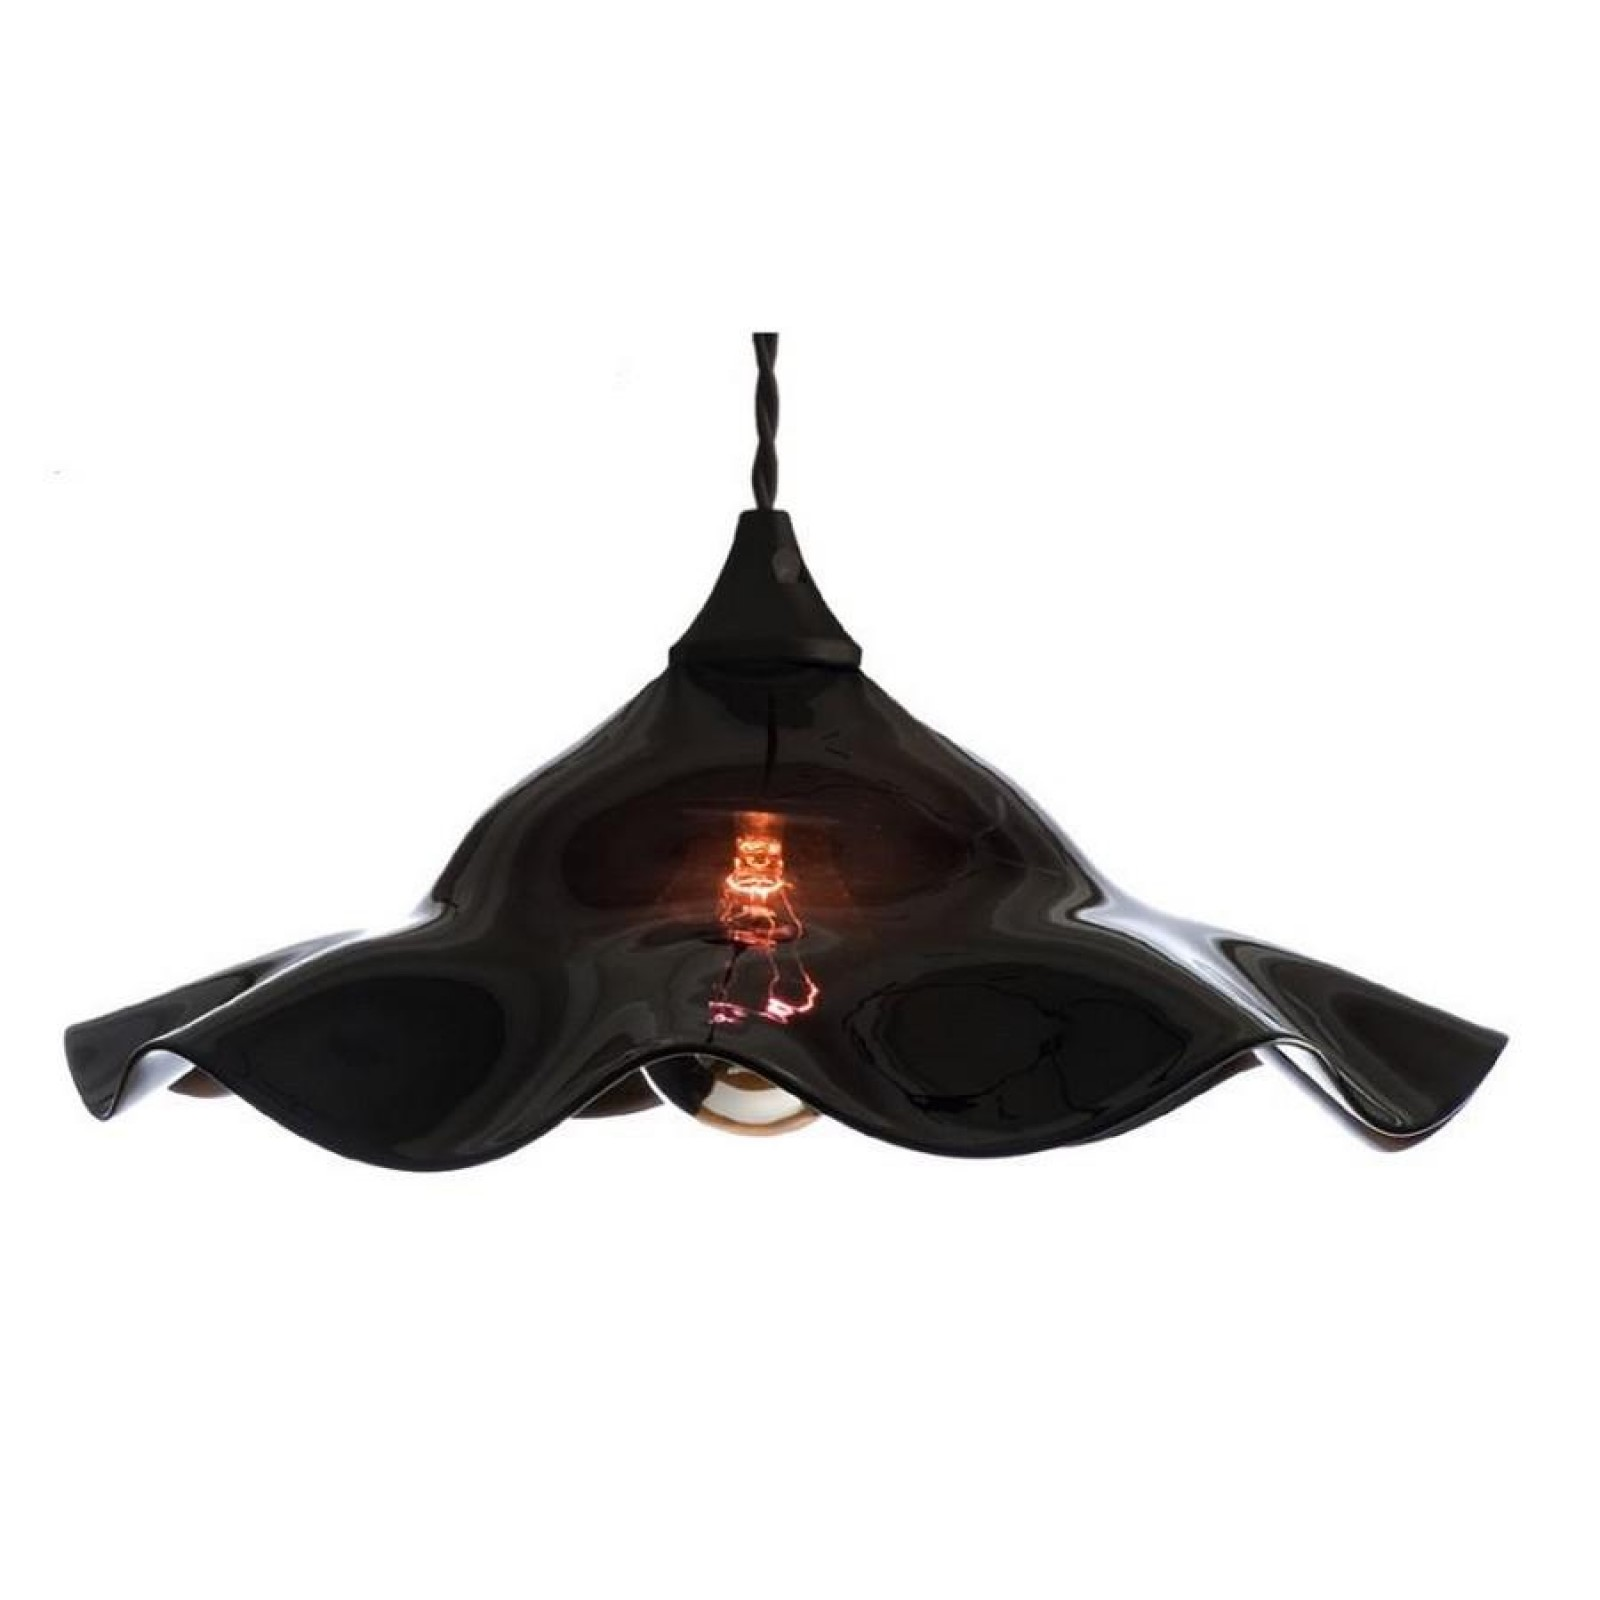 Black Nouveau Pendant Lamp Open - Rothschild & Bickers